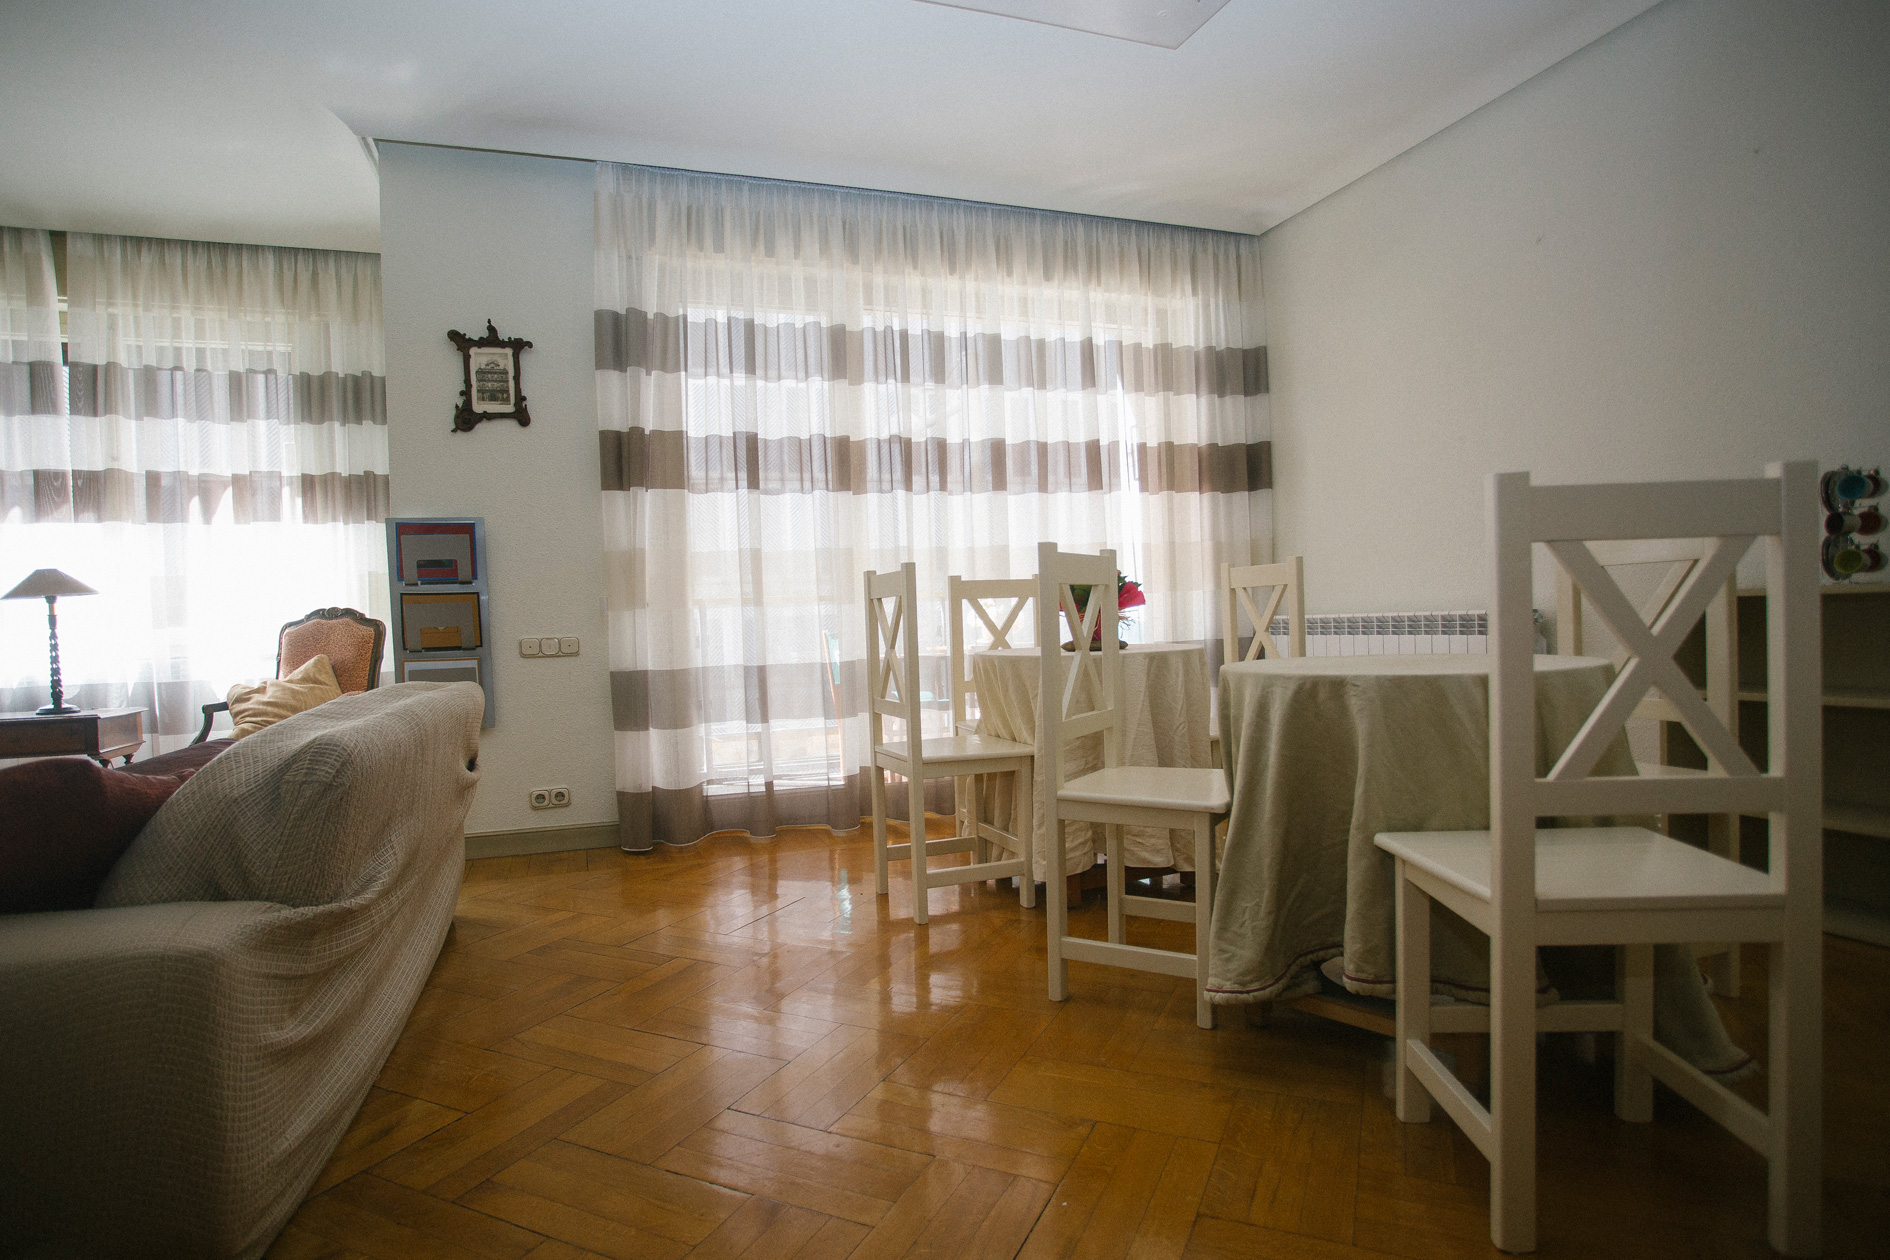 habitaci n familiar 4 pax hostal rodas pamplona